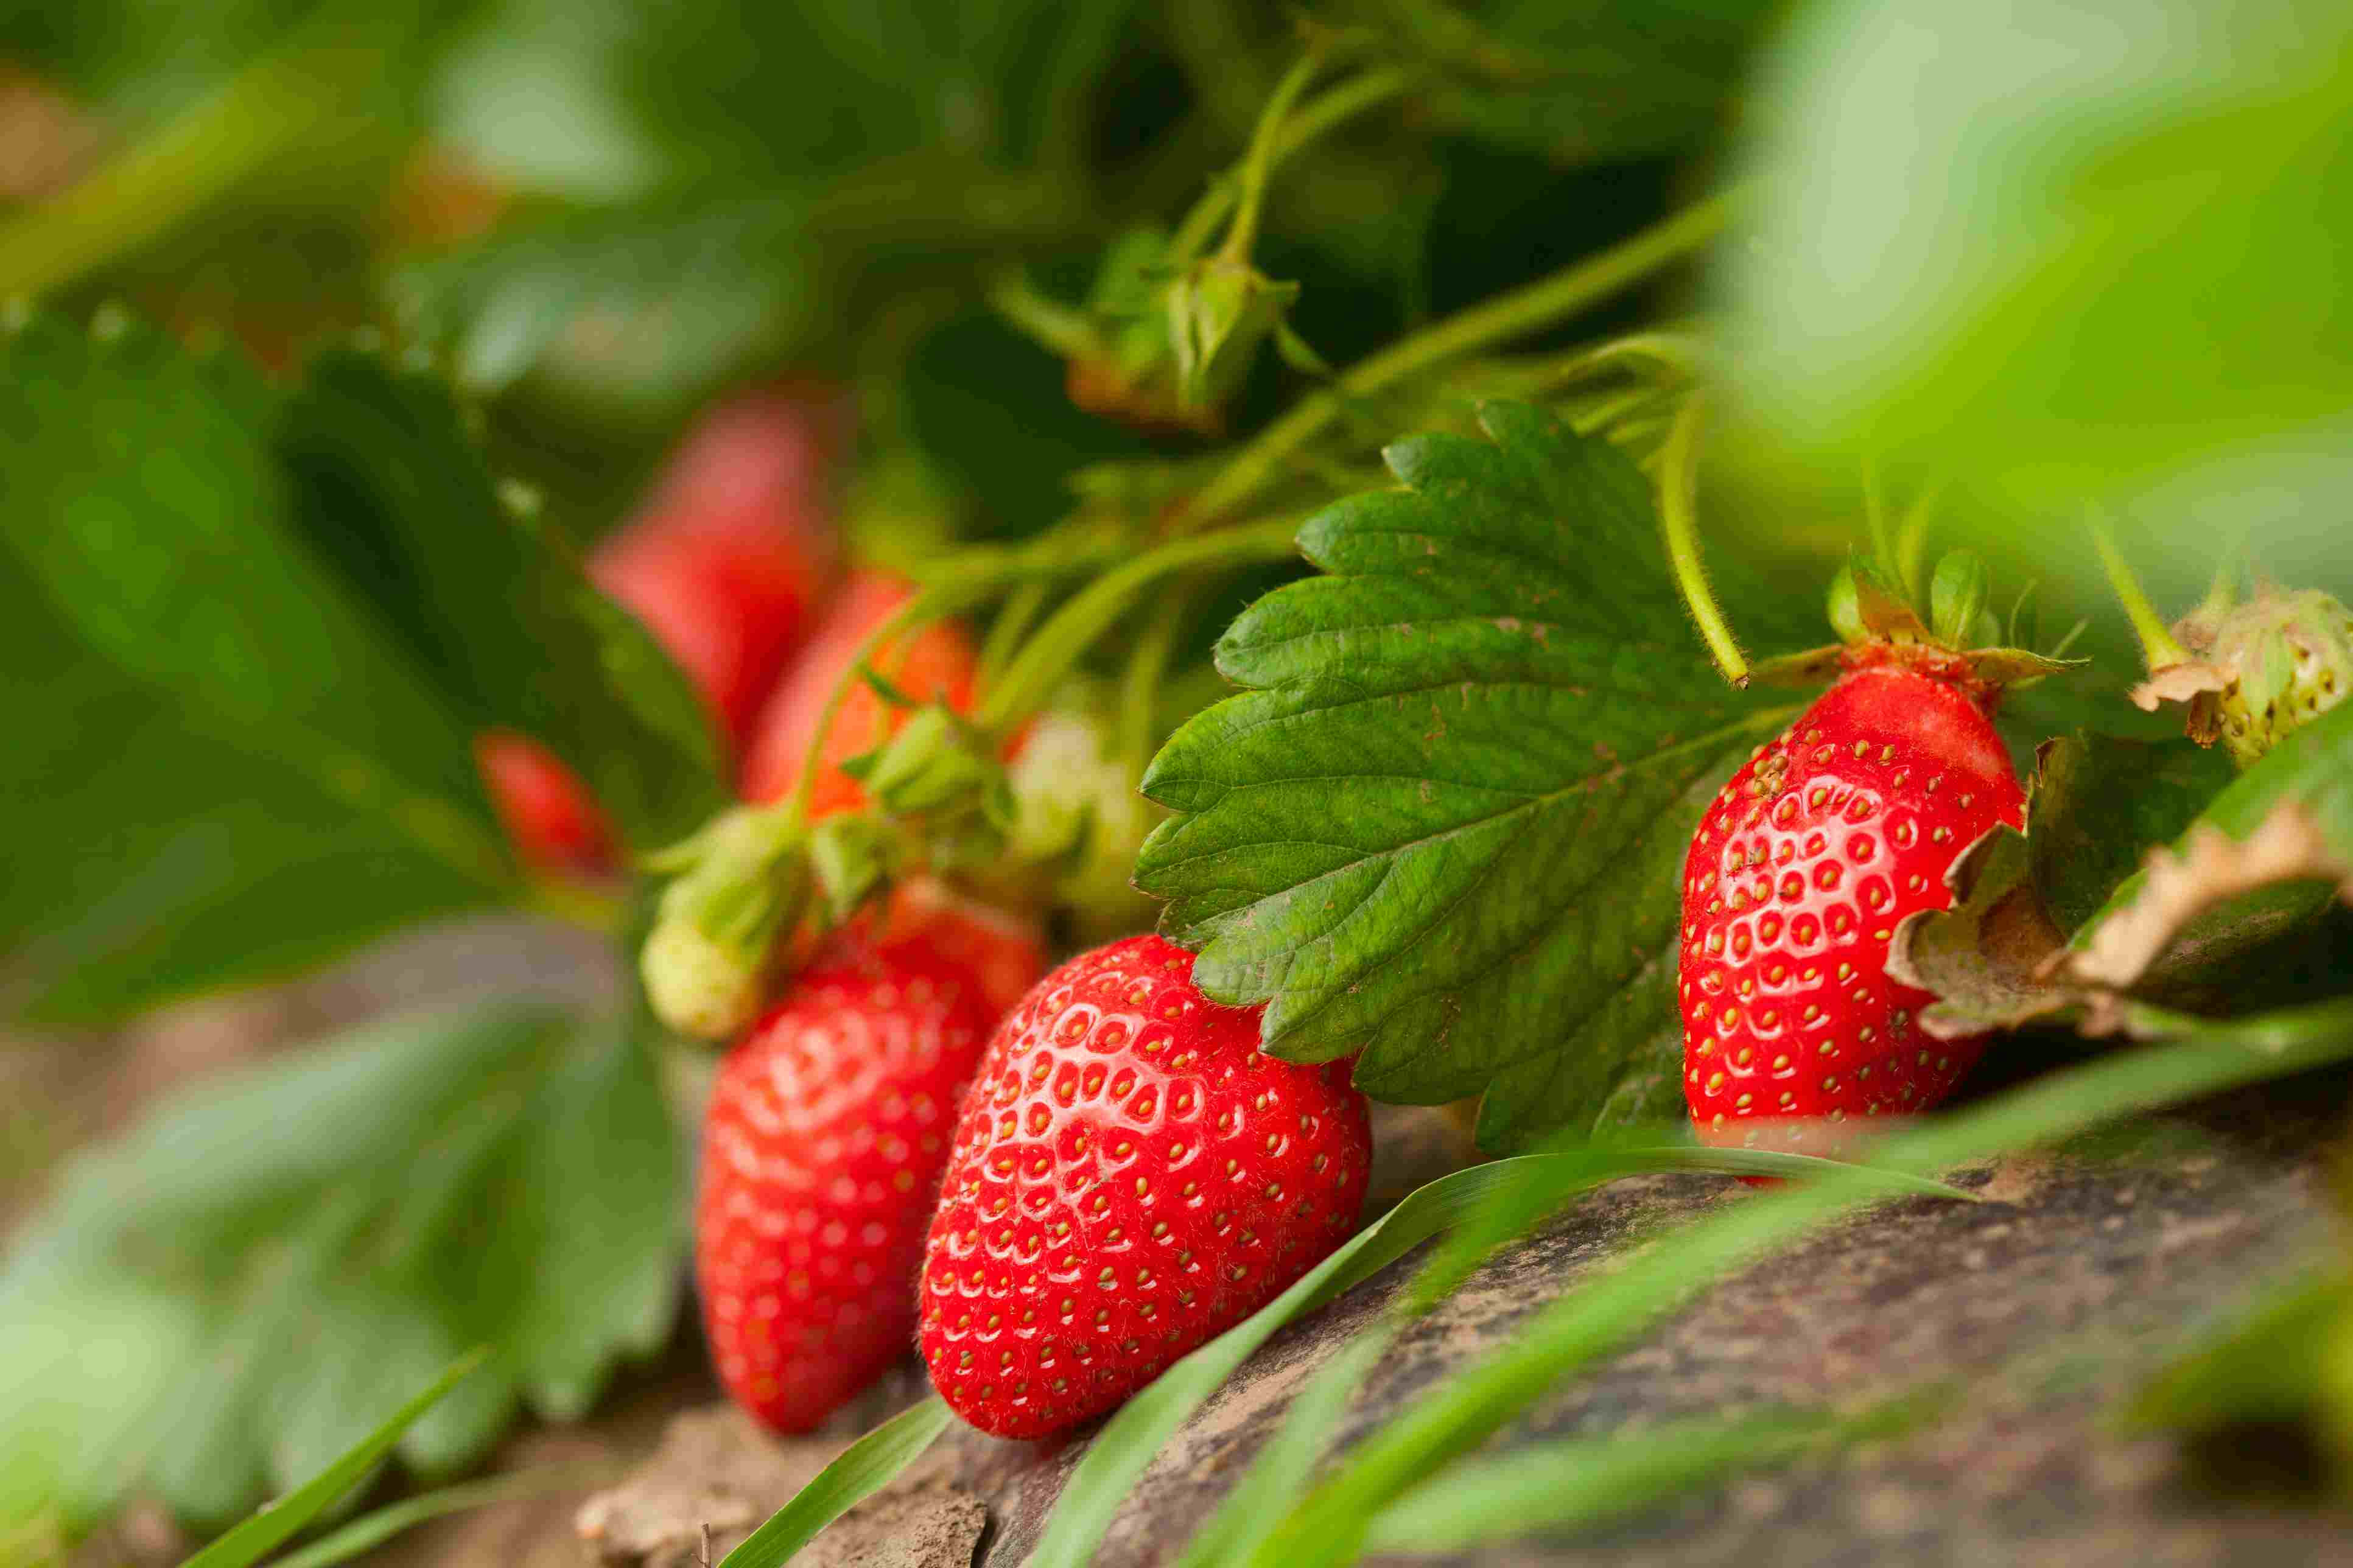 Several red strawberries growing on a plant.